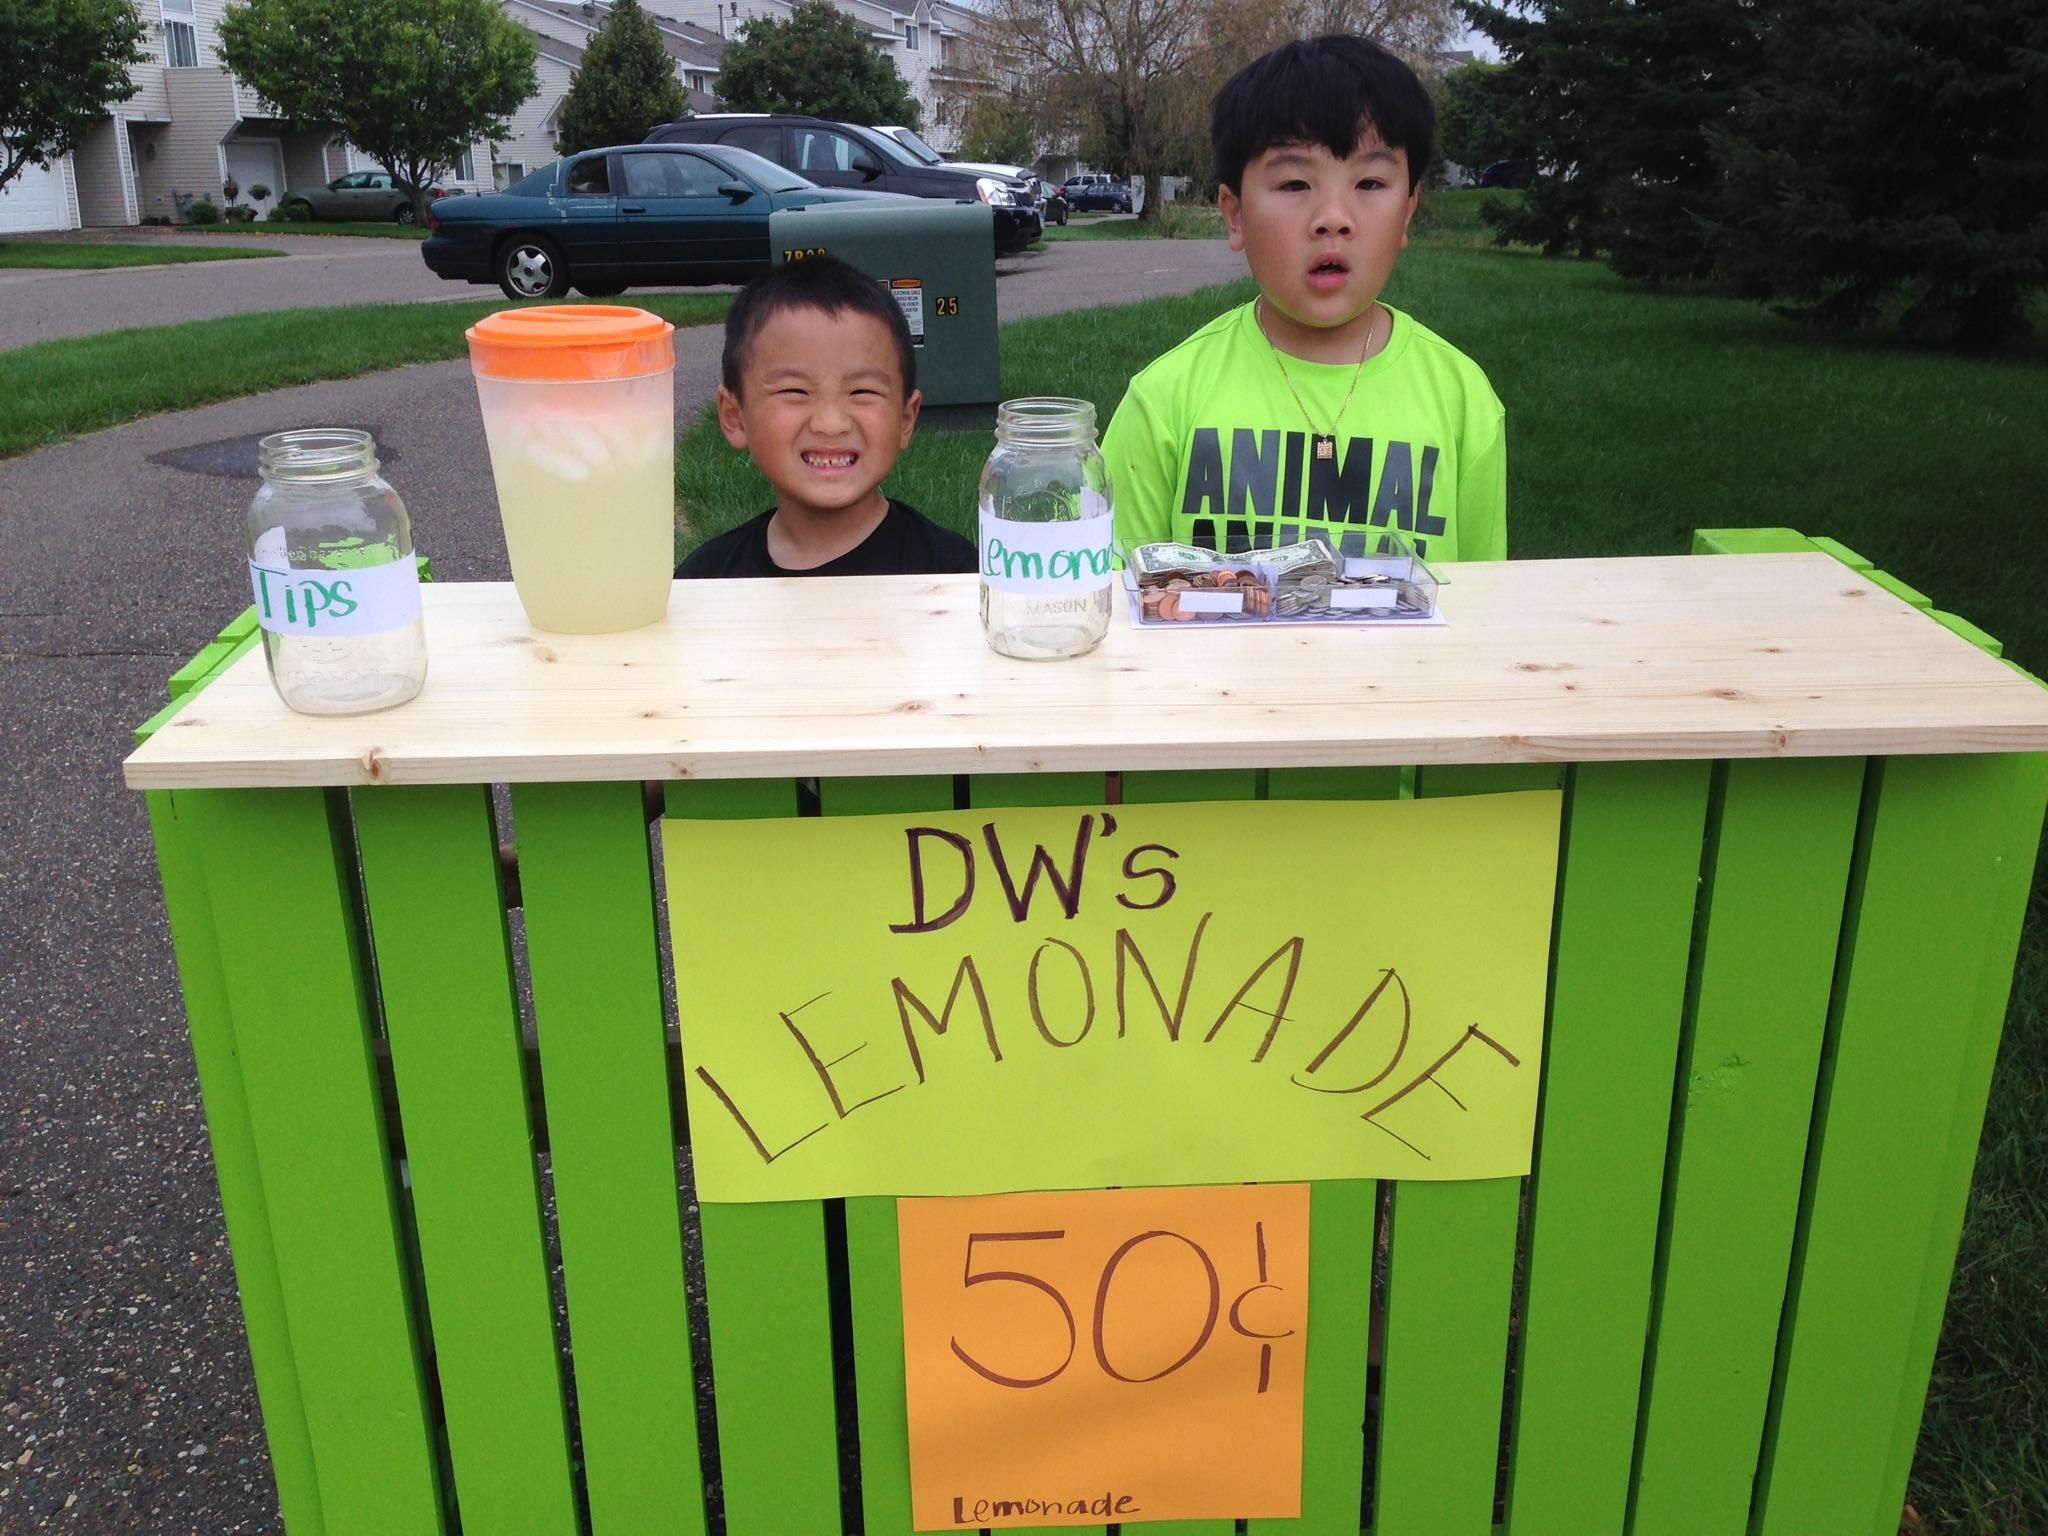 Zong's two business-minded sons celebrating the final days of summer with a lemonade stand.